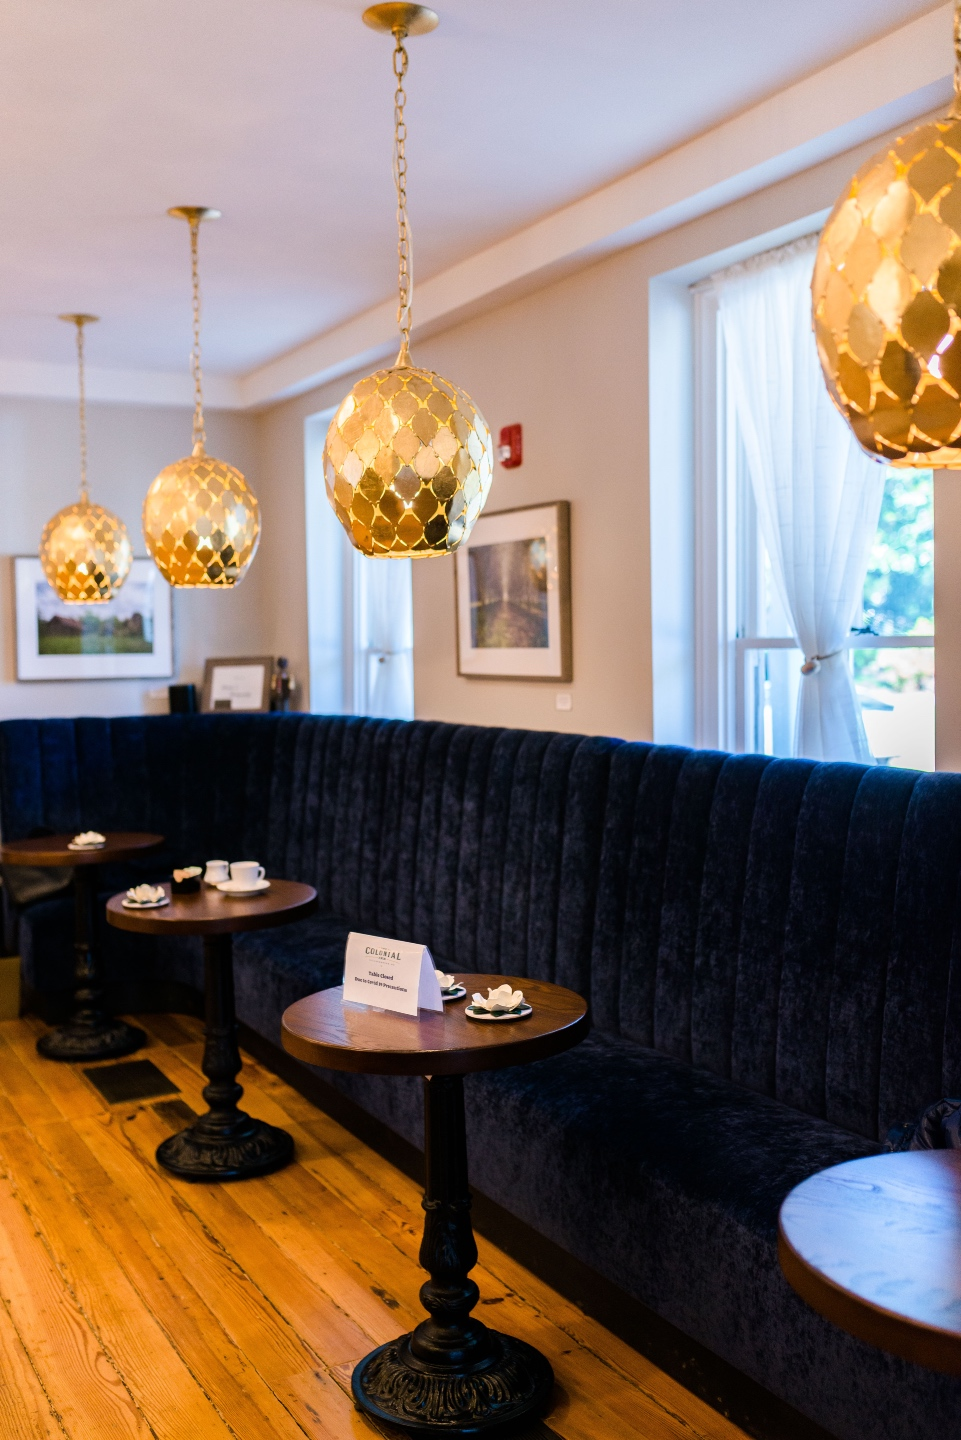 Places to Stay: The Colonial Inn in Hillsborough NC - I'm Fixin' To - @imfixintoblog |The Colonial Inn Hillsborough NC by popular NC travel blog, I'm Fixin' To: image of a black velvet bench, gold pendant lights, and round tables set with espresso cups.